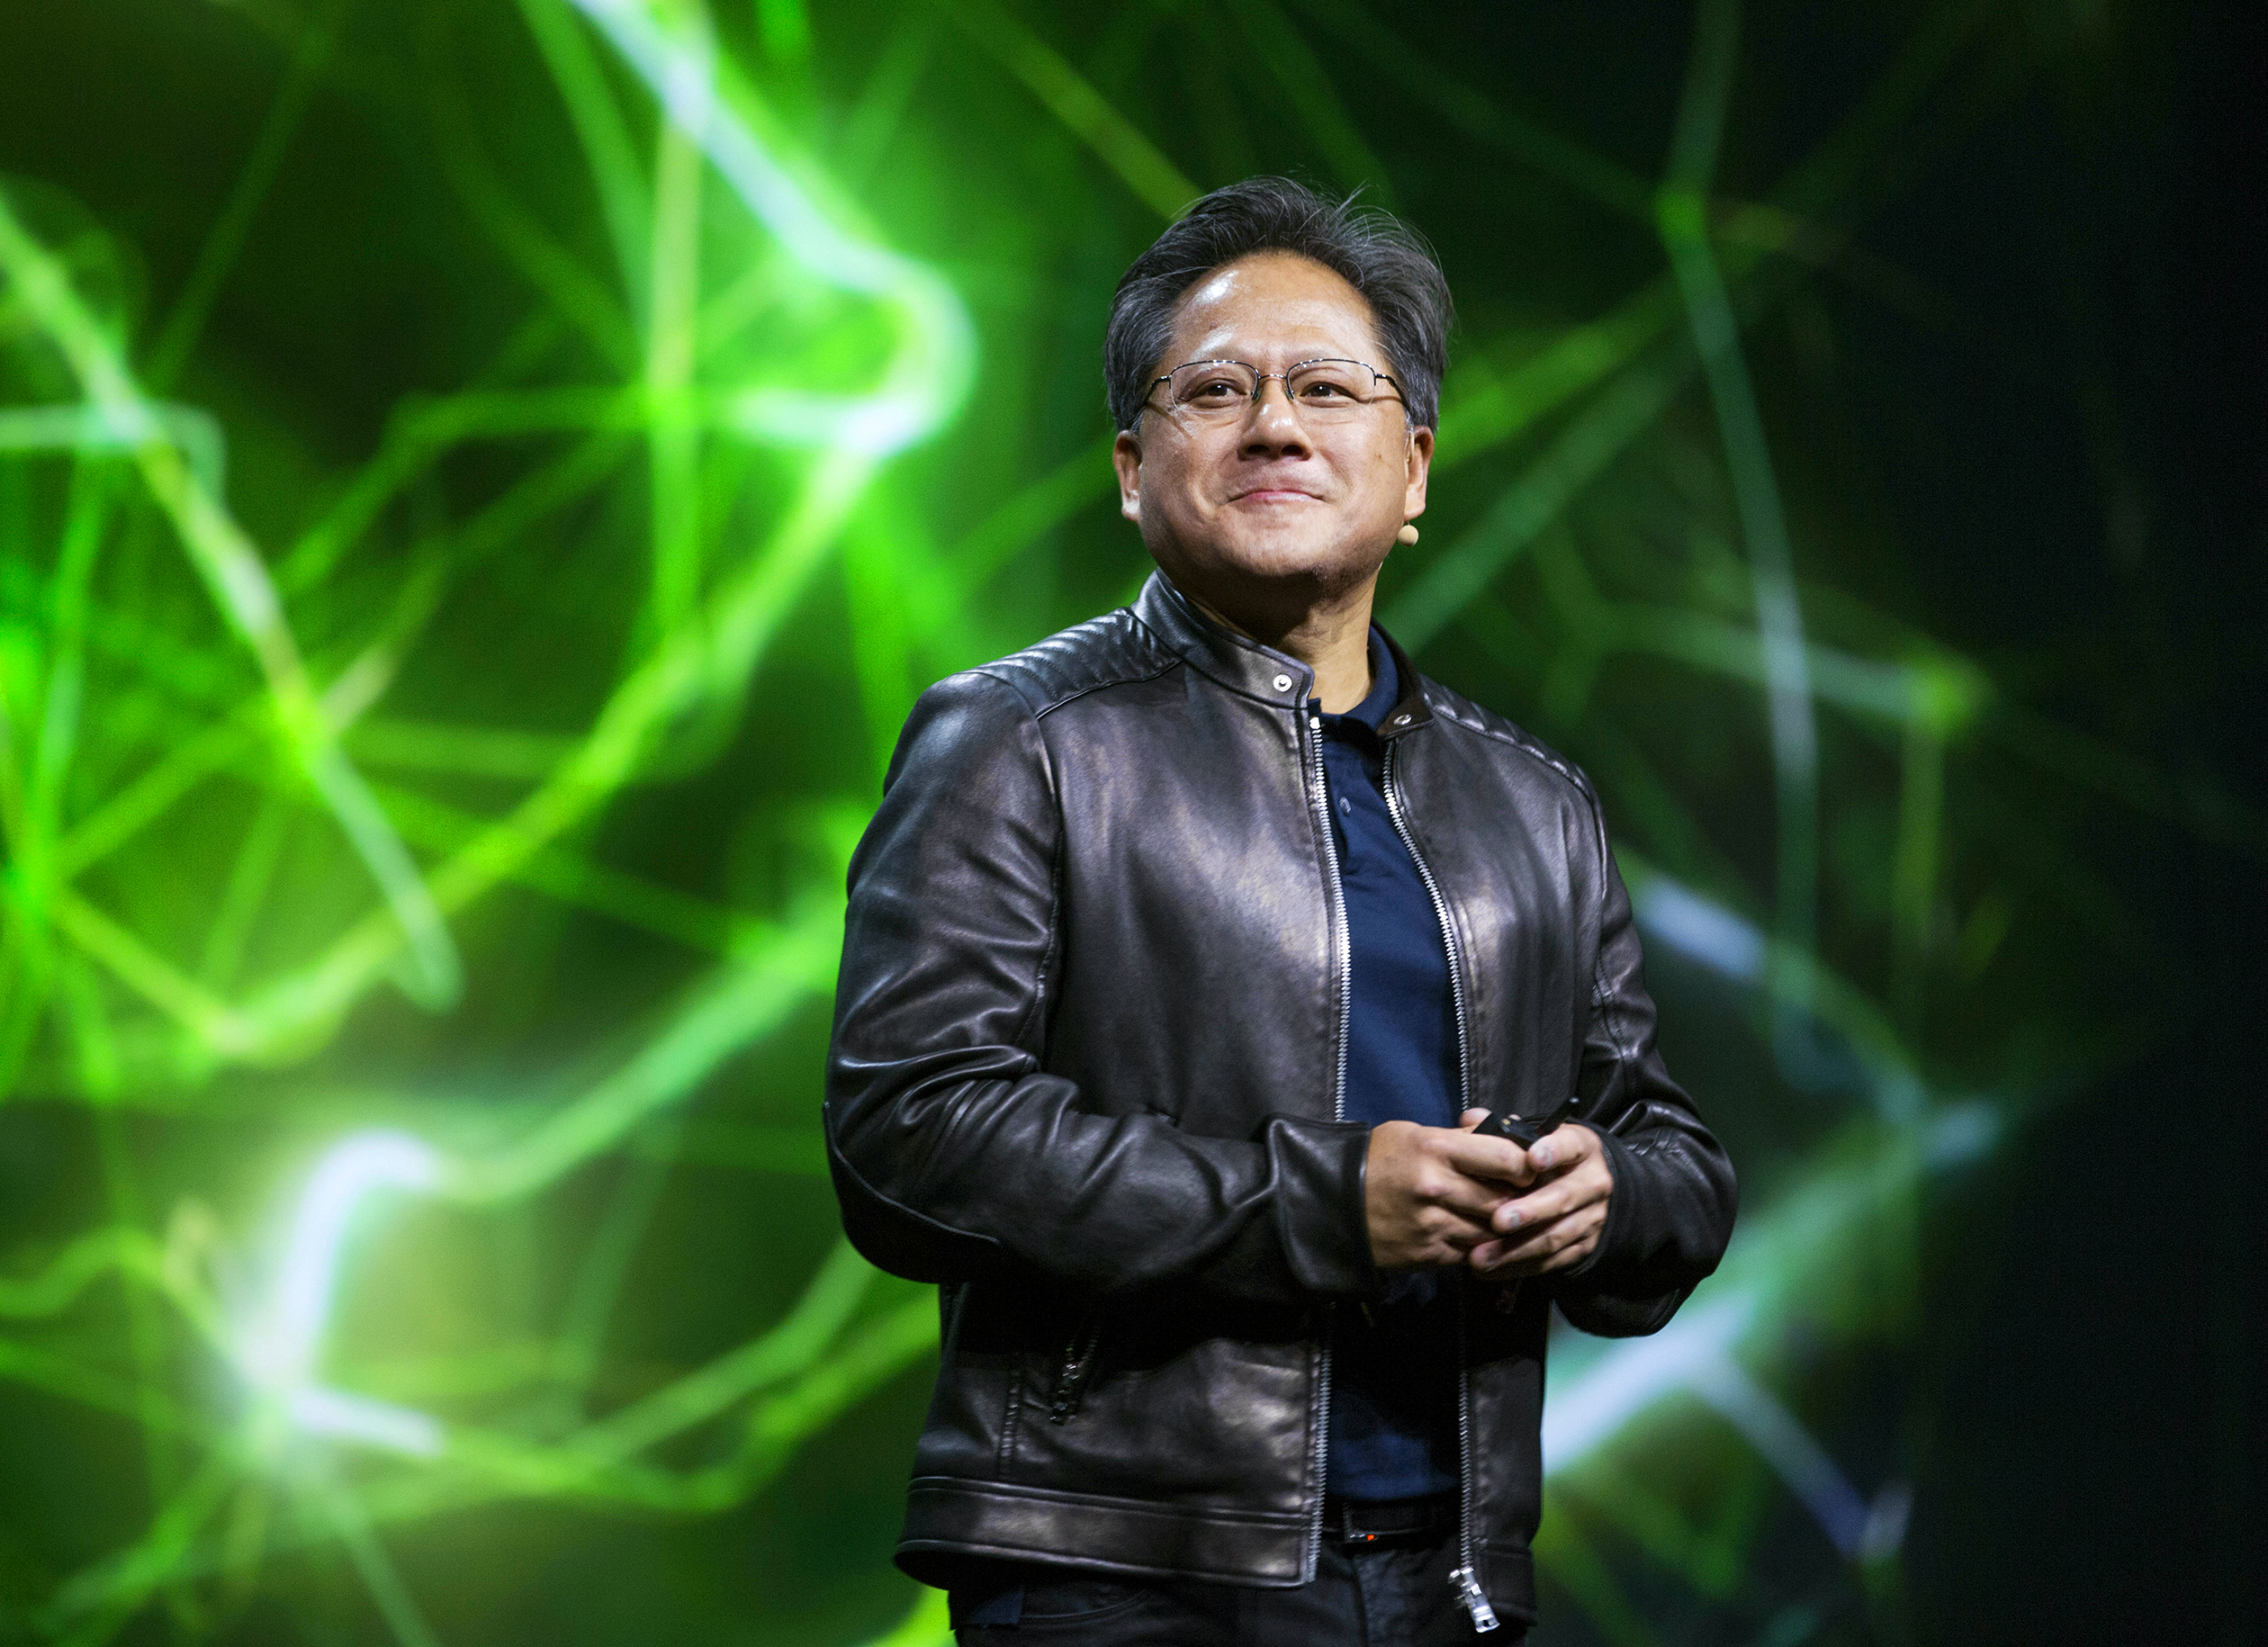 Nvidia To Debut Netflix Like Video Game Service For Pc Users Fortune